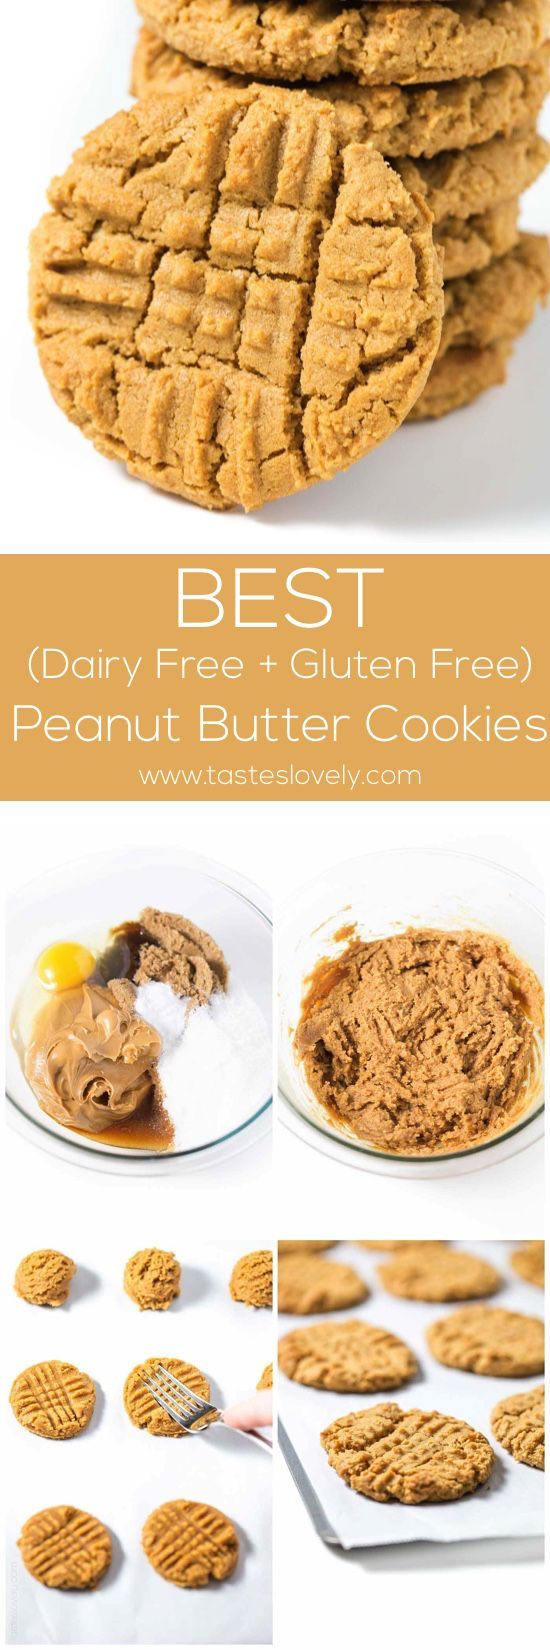 The BEST dairy free peanut butter cookies! You just need 1 bowl and 6 ingredients. Couldnt be easier! Gluten free.